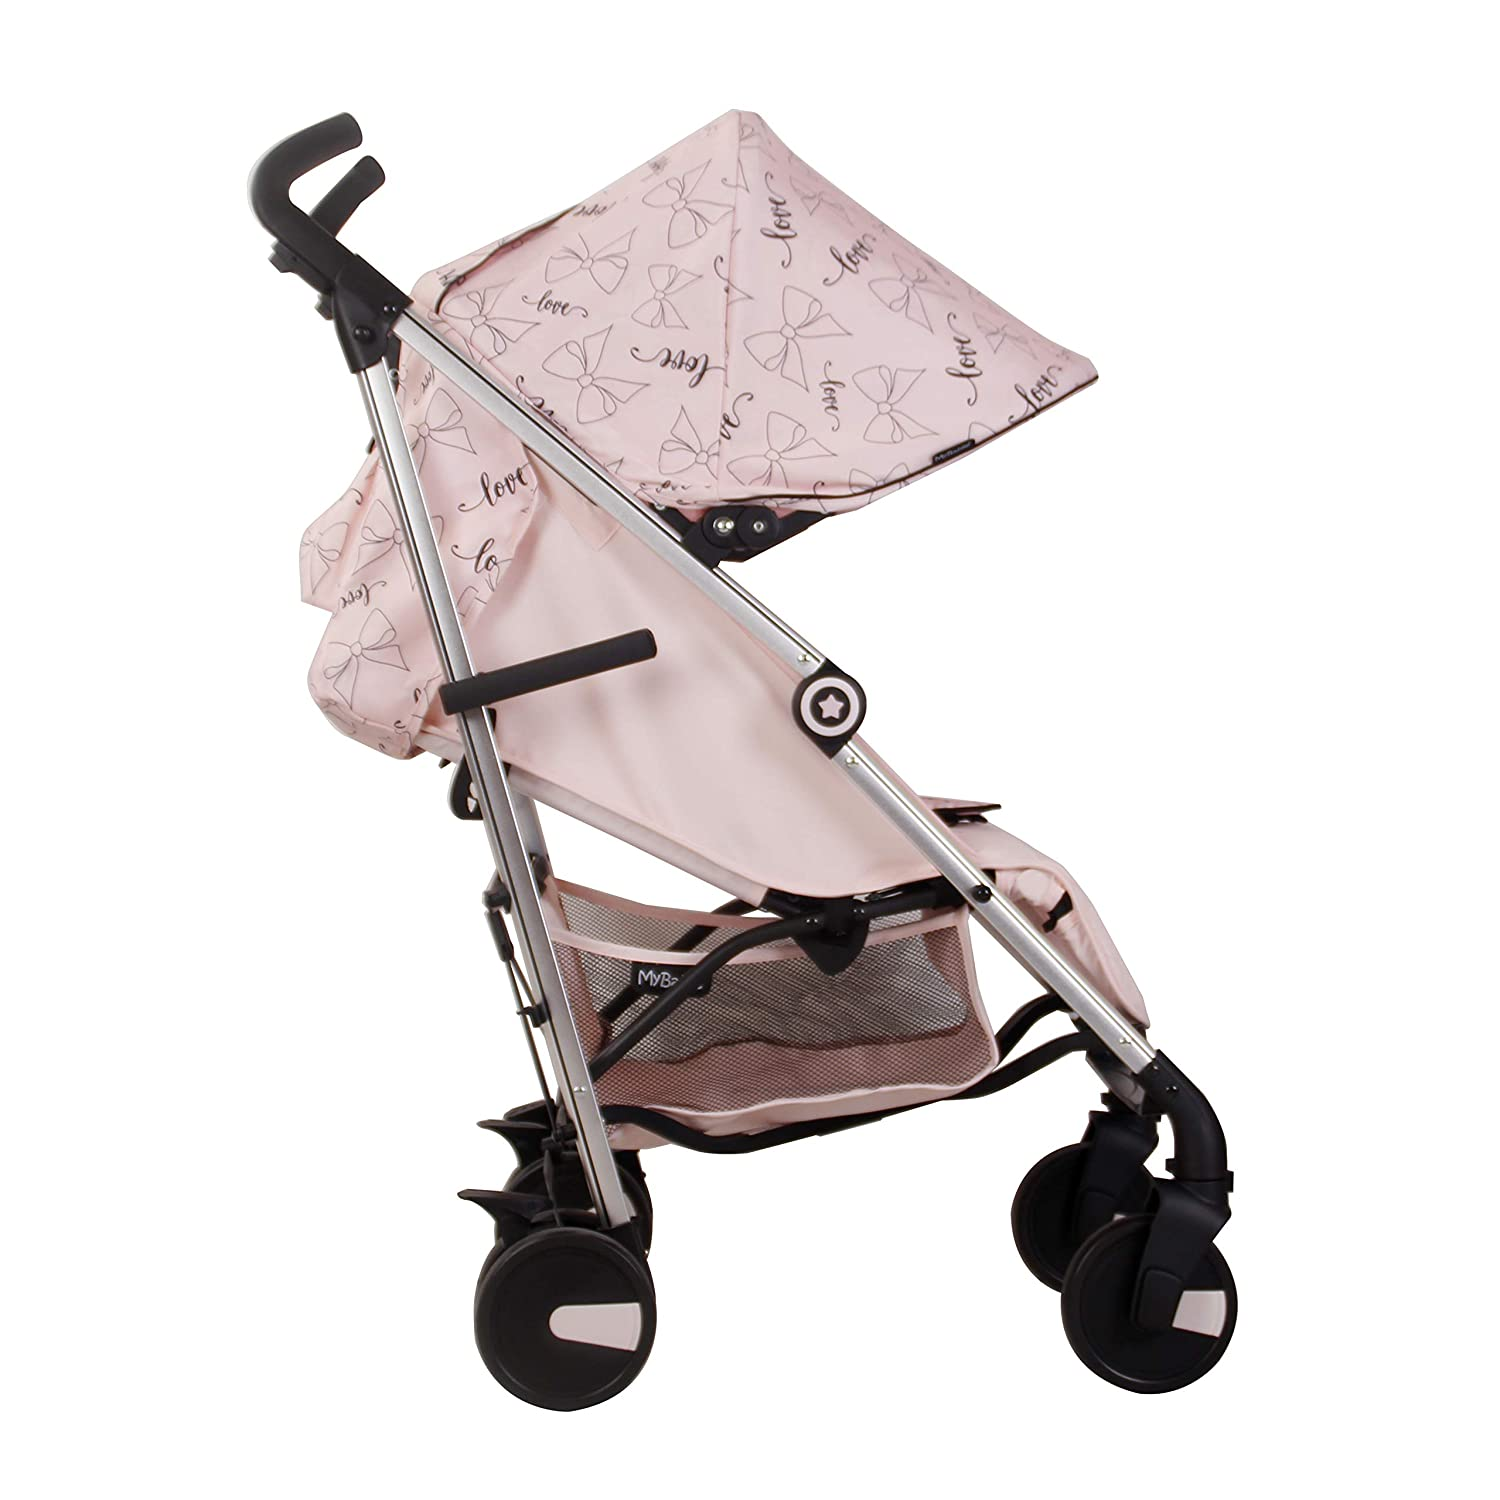 Pram Canopy to fit Silver Cross in white// with navy bows